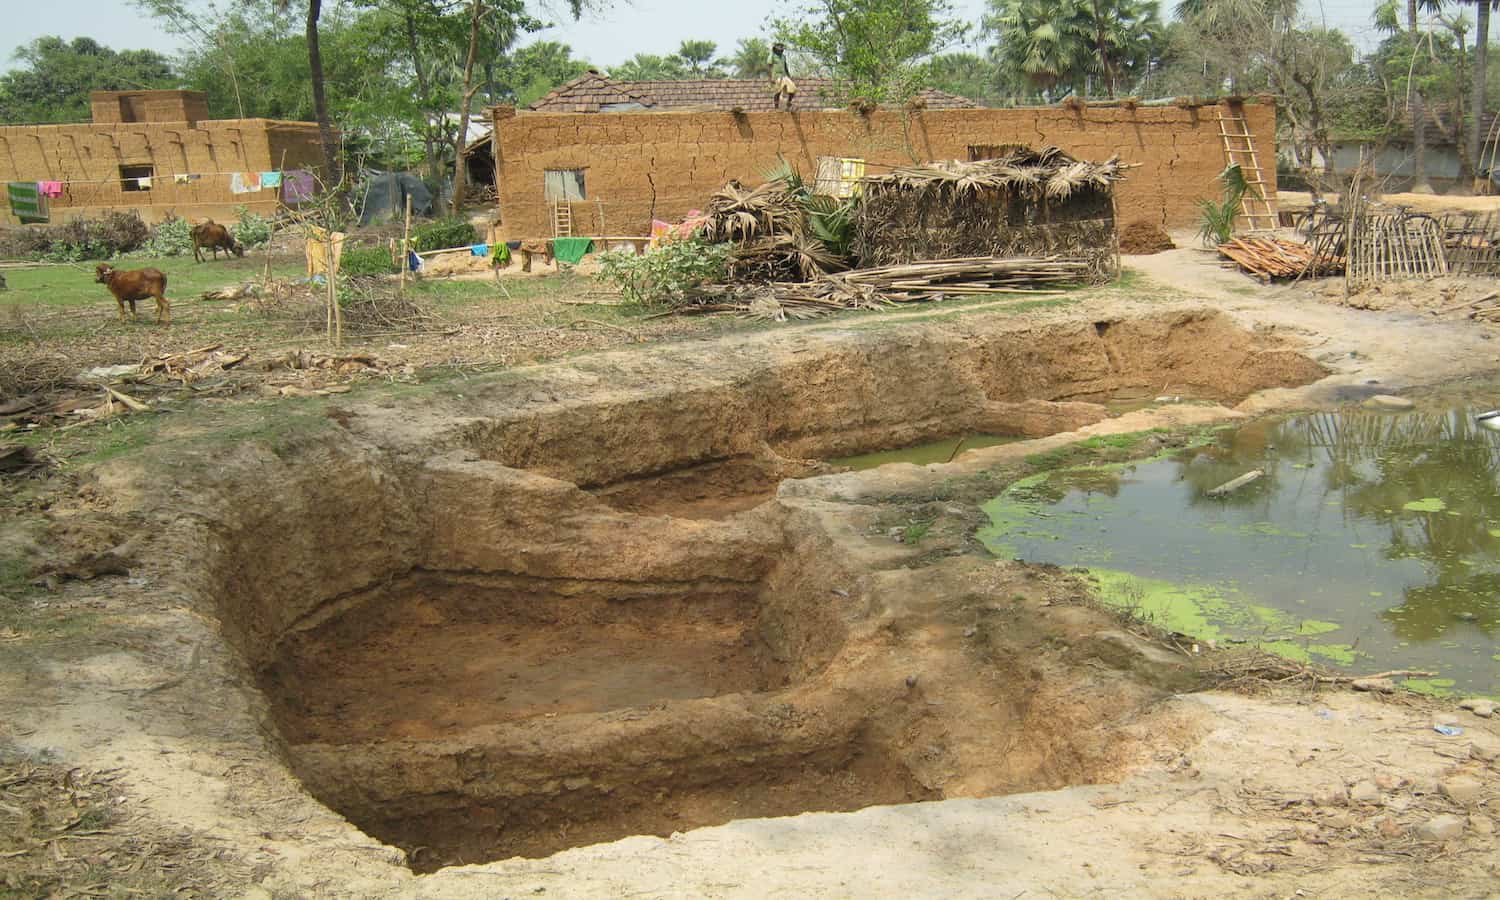 The Rajadighi Community Health Service Society's Doba Livelihood Program is helping Indian farmers fight climate change through water conservation.